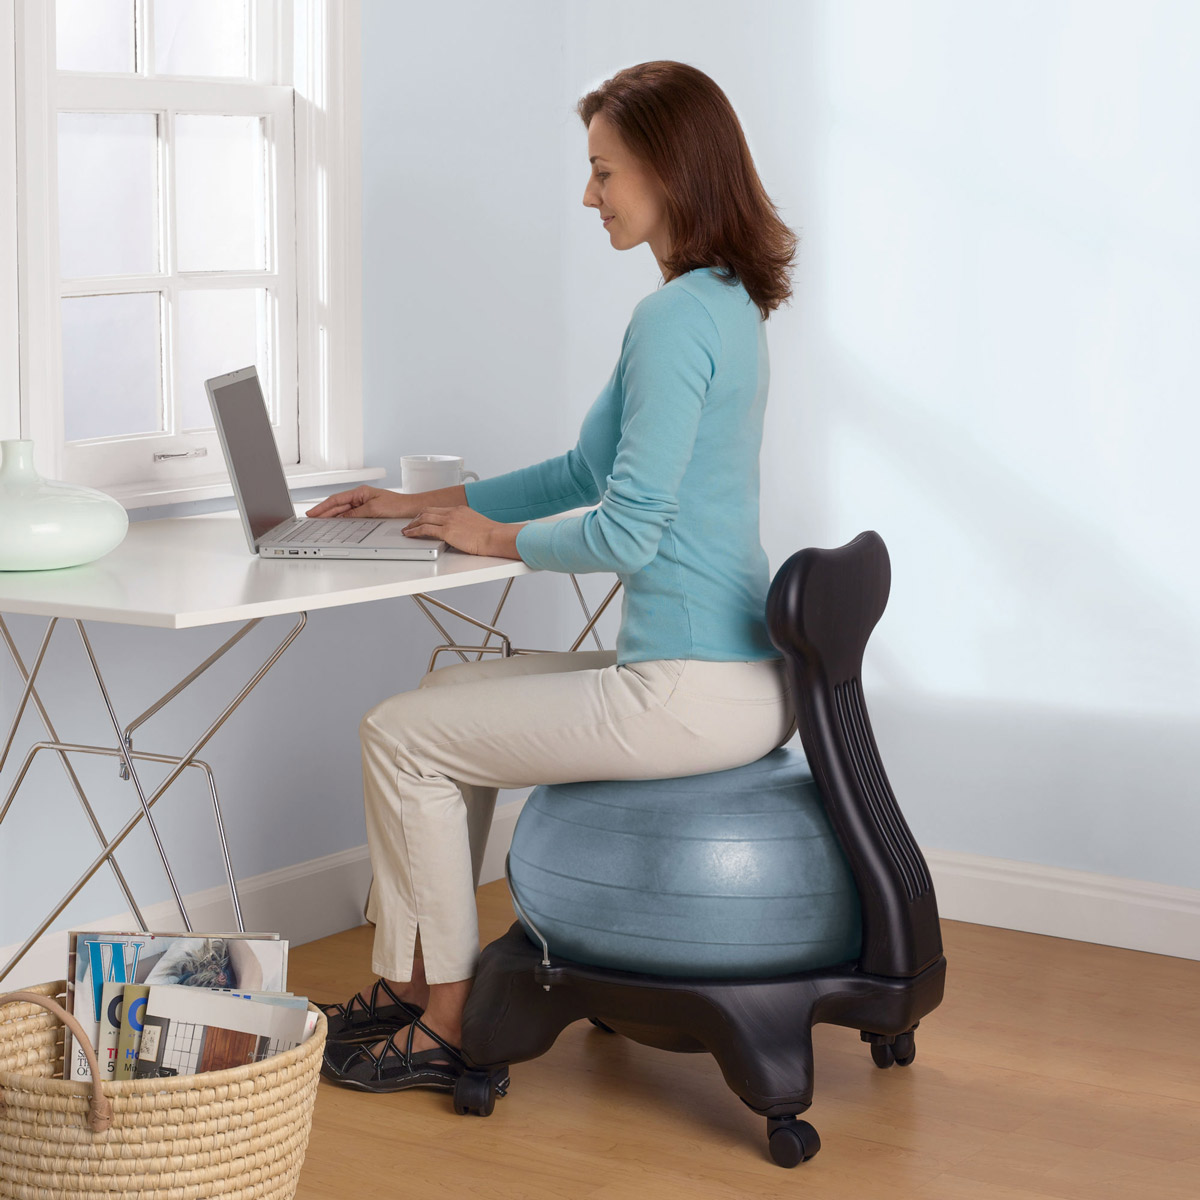 Ball Chair Store The Difference Between an Exercise Ball  : balance ball chair 3 Exercise Ball Chair <strong>Walmart</strong> from www.ballchairstore.com size 1200 x 1200 jpeg 200kB